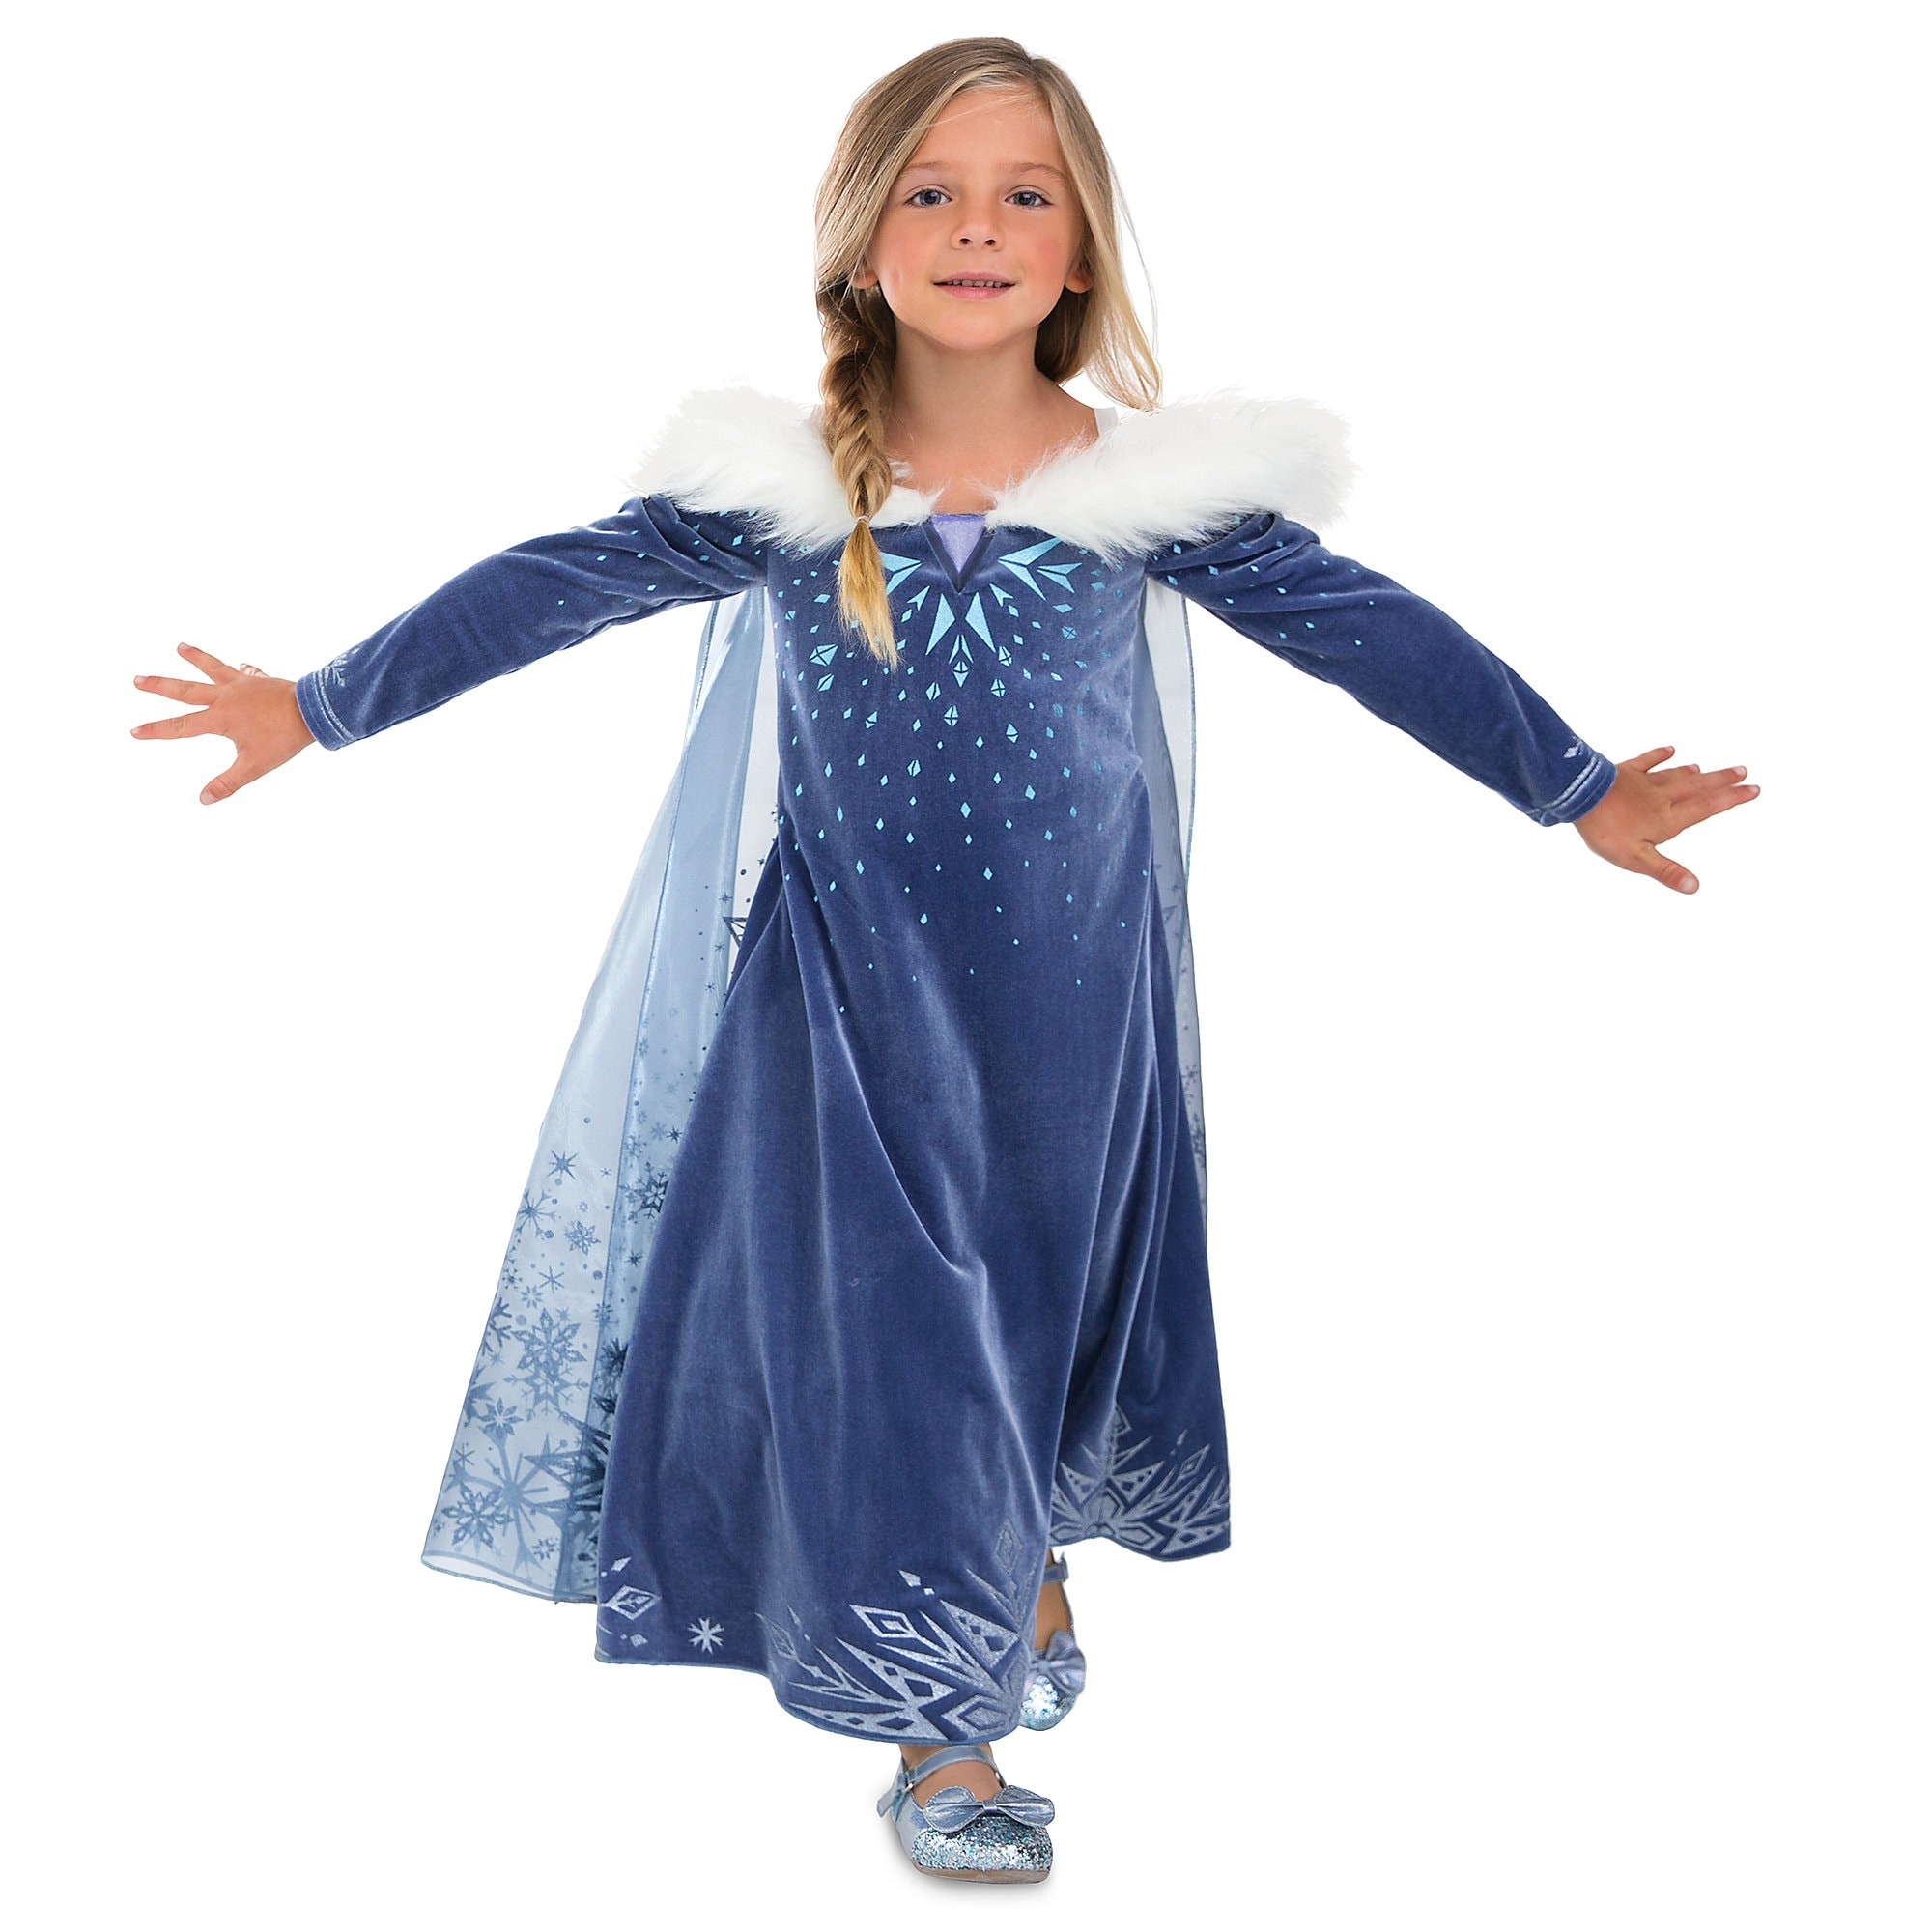 Thumbnail Image of Elsa Deluxe Costume for Kids - Olafu0027s Frozen Adventure # 1  sc 1 st  shopDisney & Elsa Deluxe Costume for Kids - Olafu0027s Frozen Adventure | shopDisney